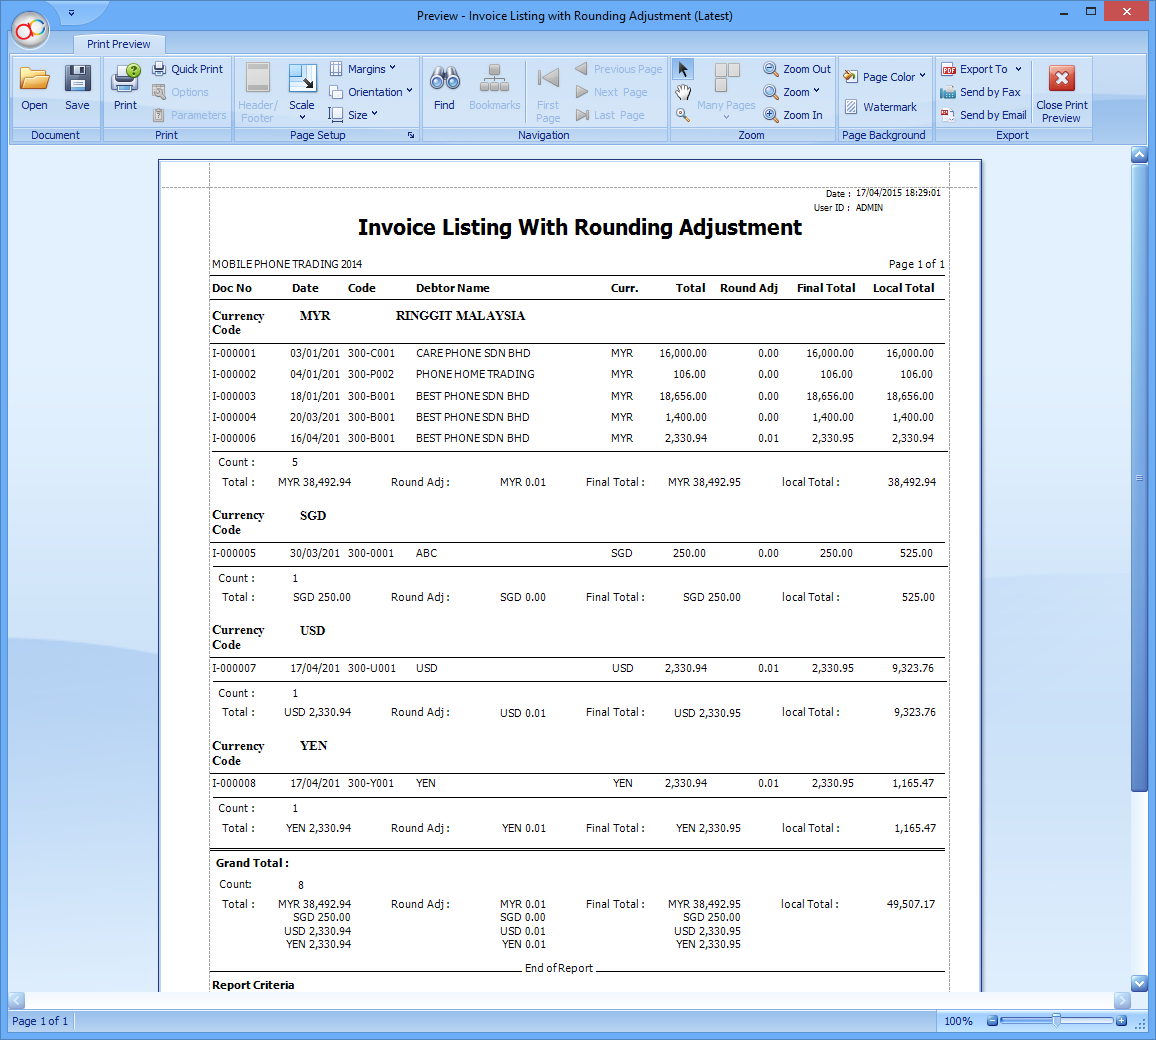 Invoice Listing with Rounding Adjustment